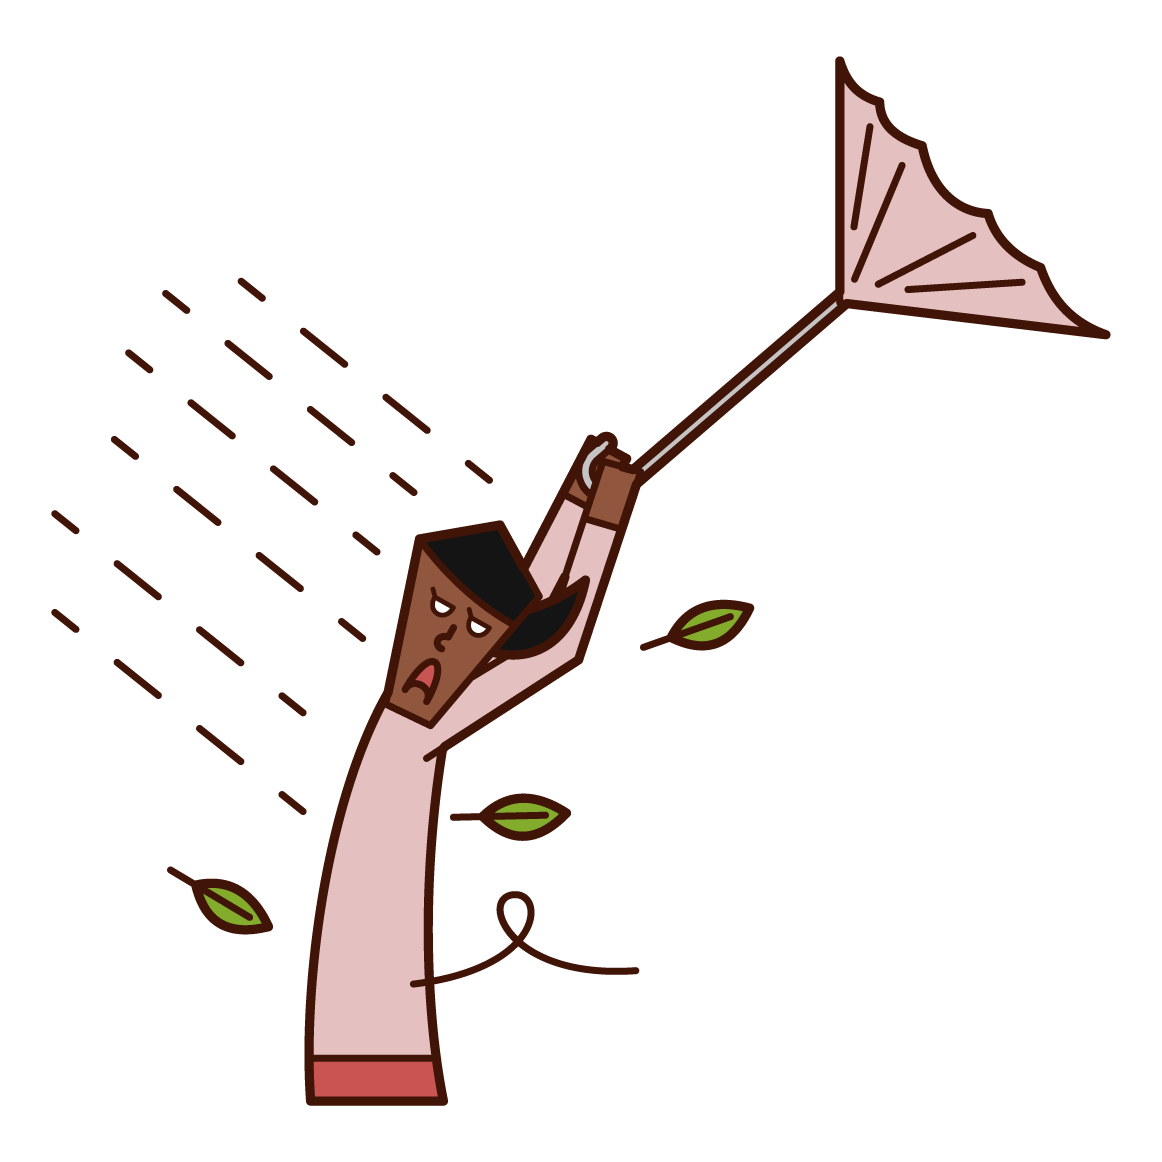 Illustration of a woman who is likely to be blown away by a strong wind